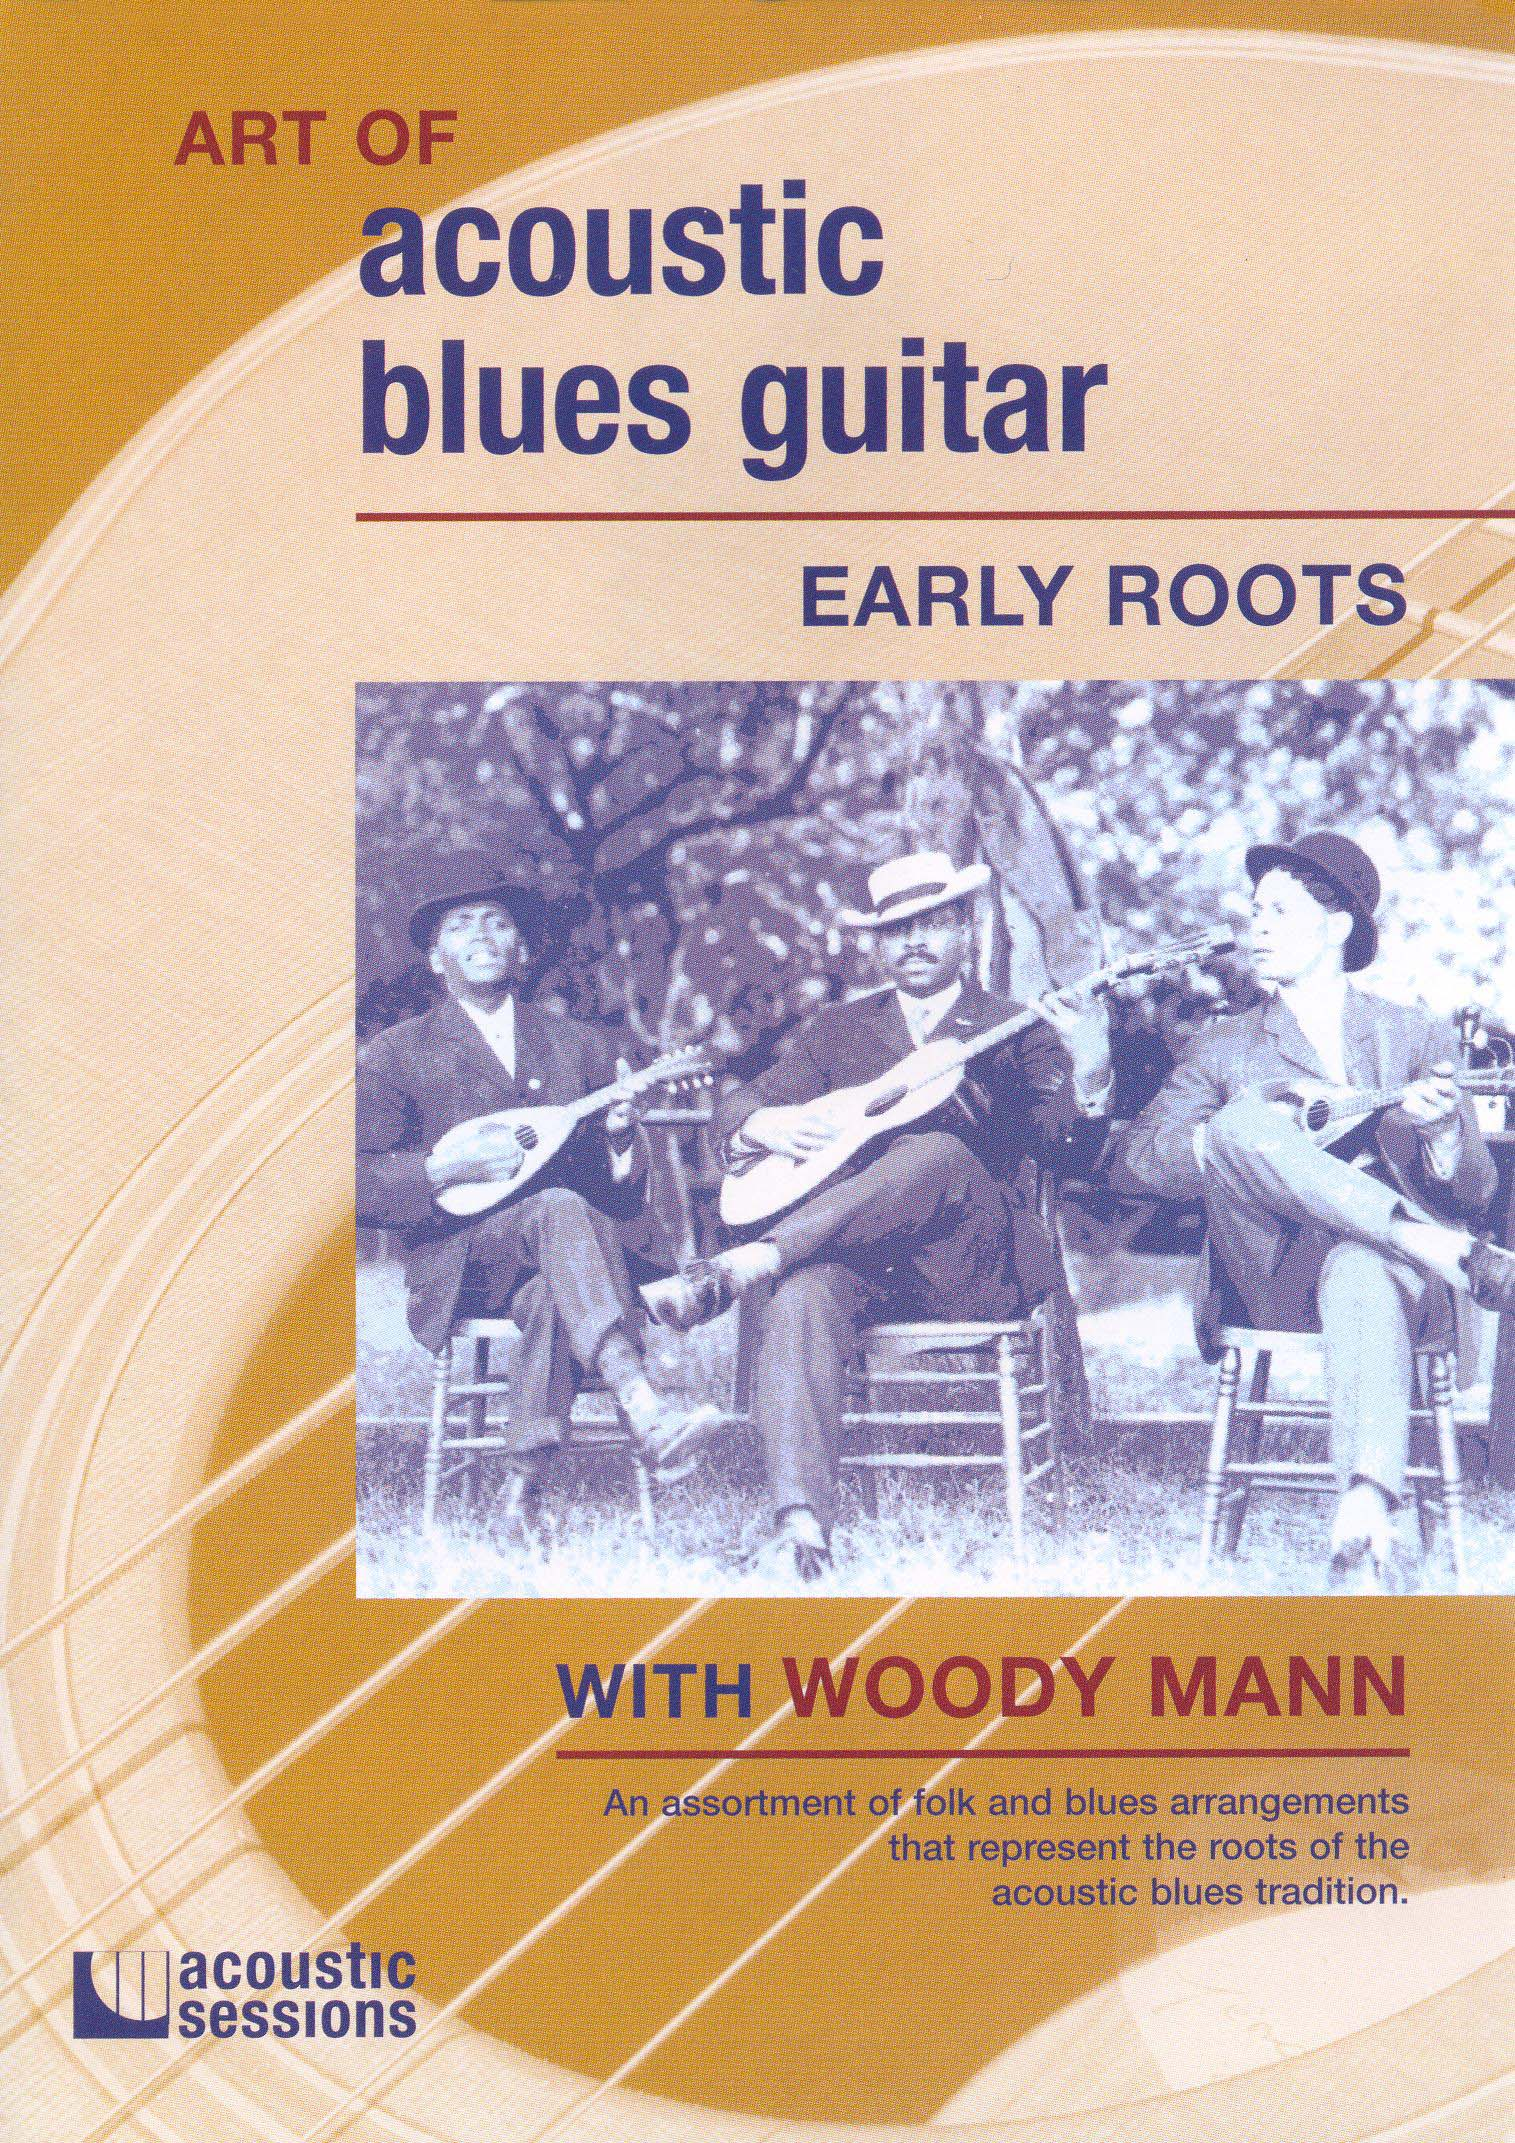 The Art of Acoustic Blues Guitar: Early Roots